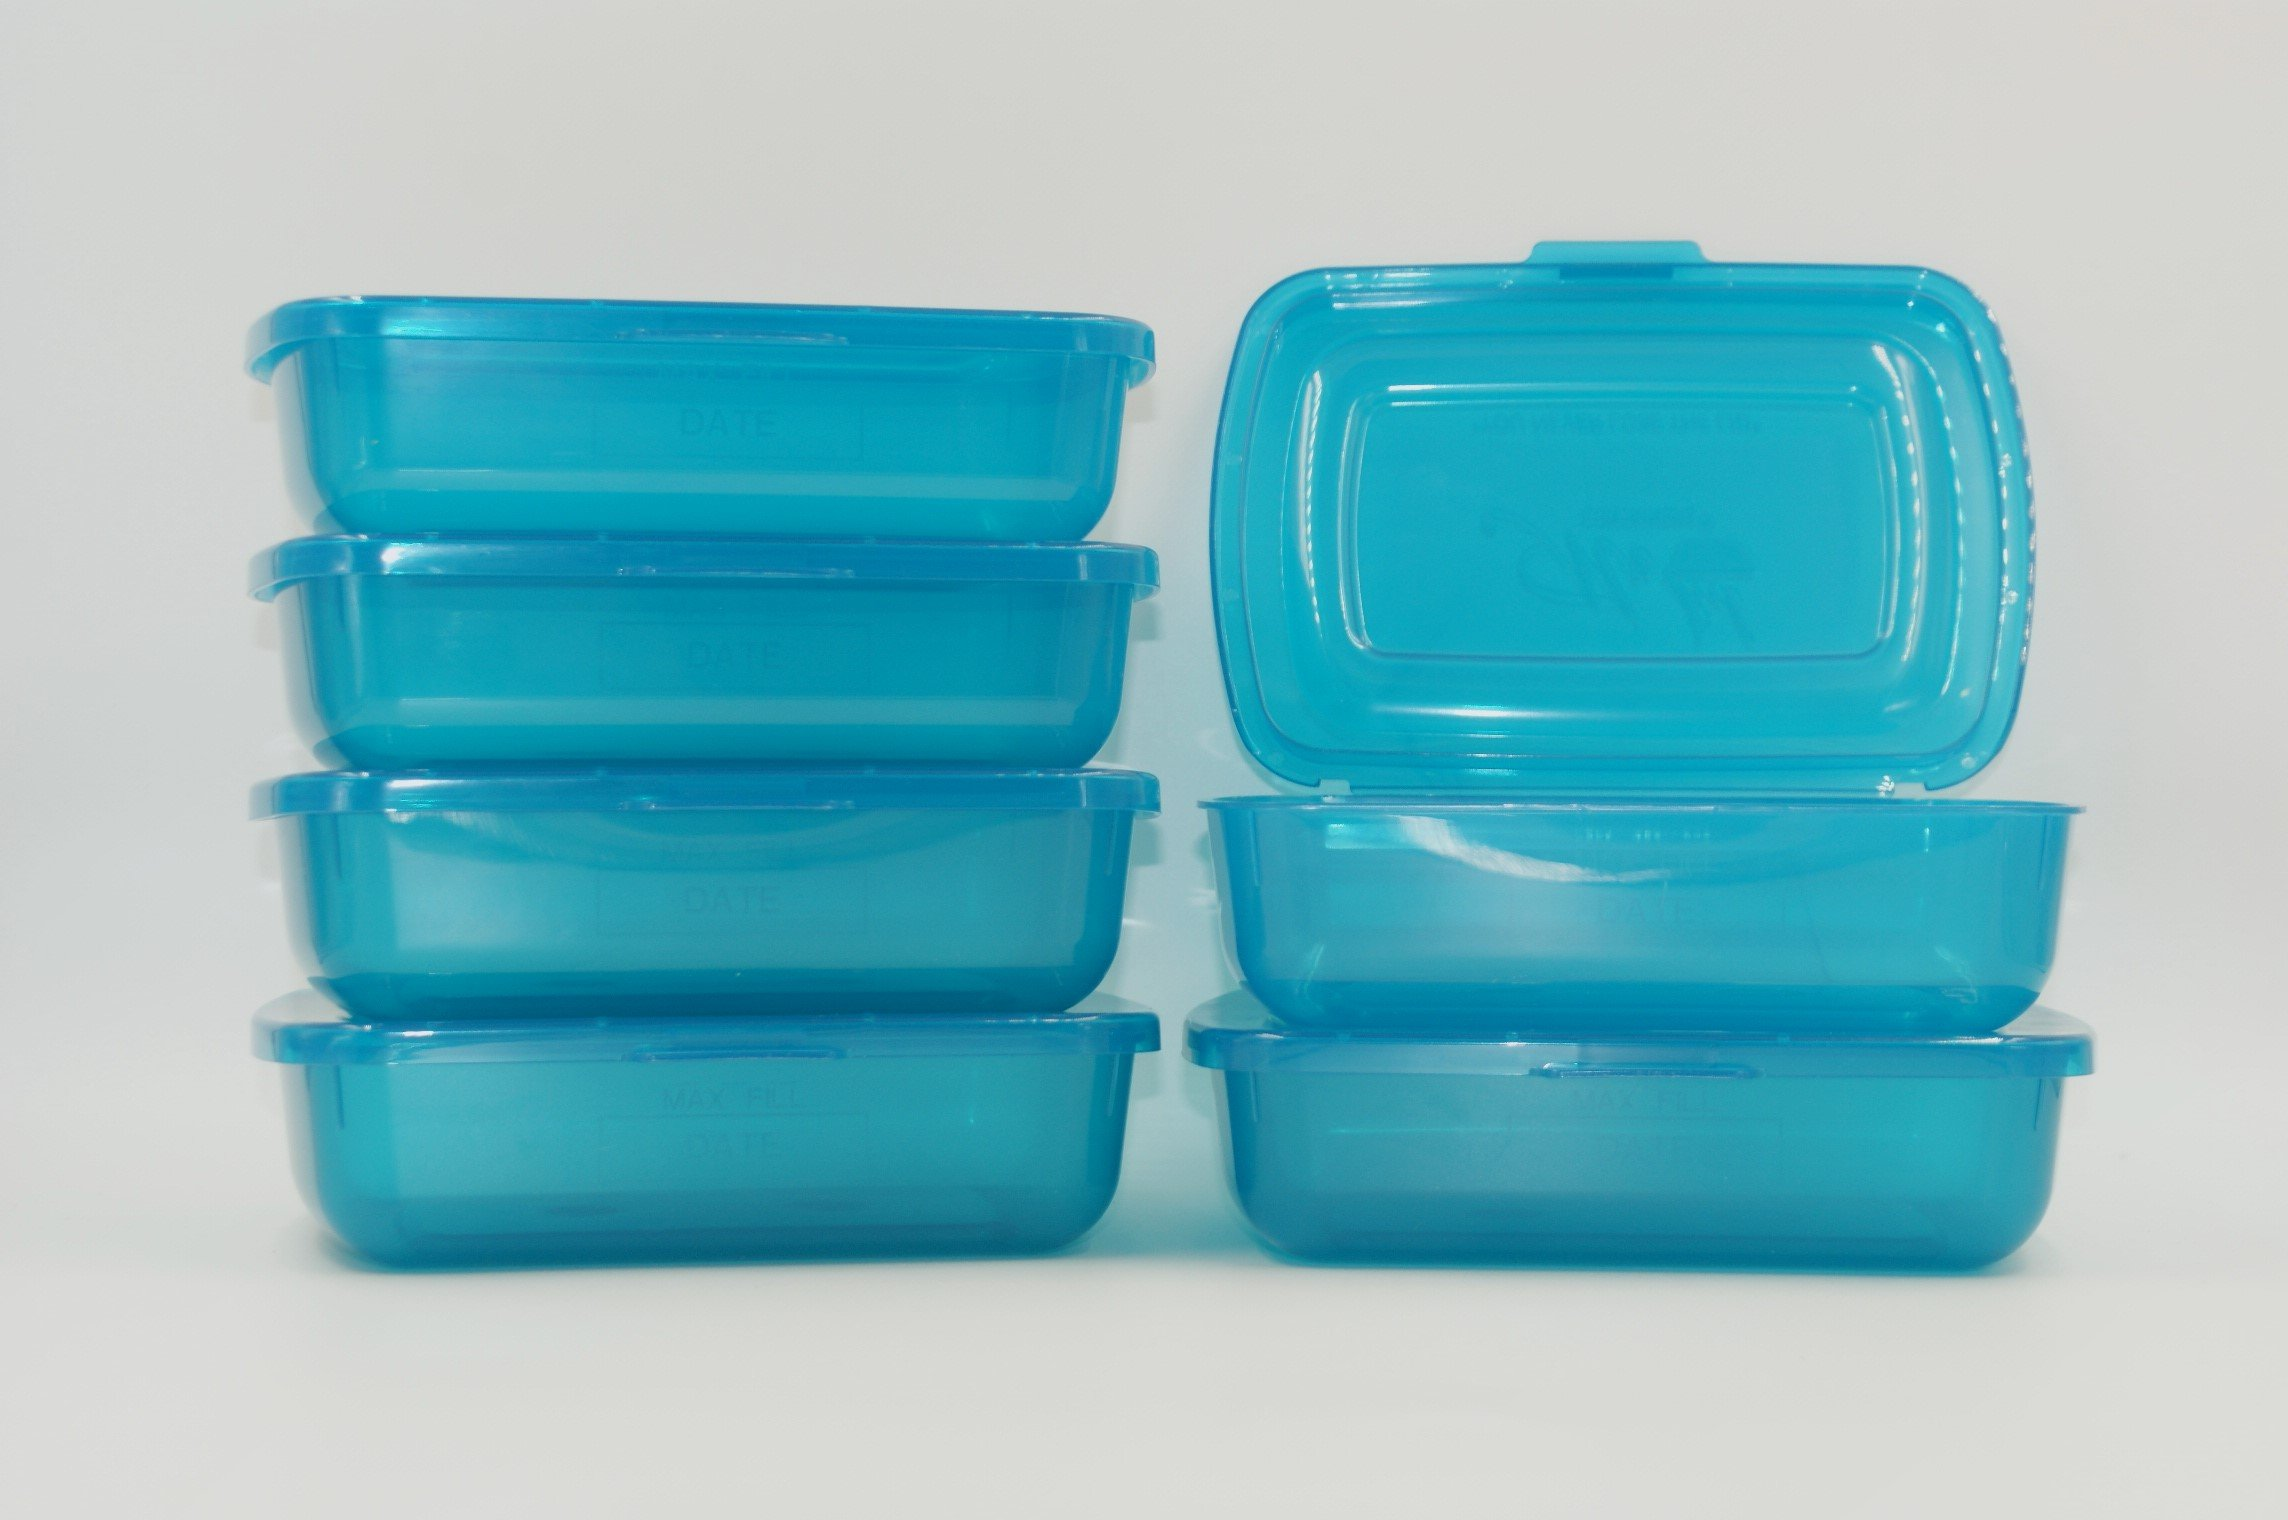 Mr Lid Premium Food Storage Container with Attached Lid - BPA Free - Dishwasher-Safe, Sandwich Container (19oz) 6 Count - Blue